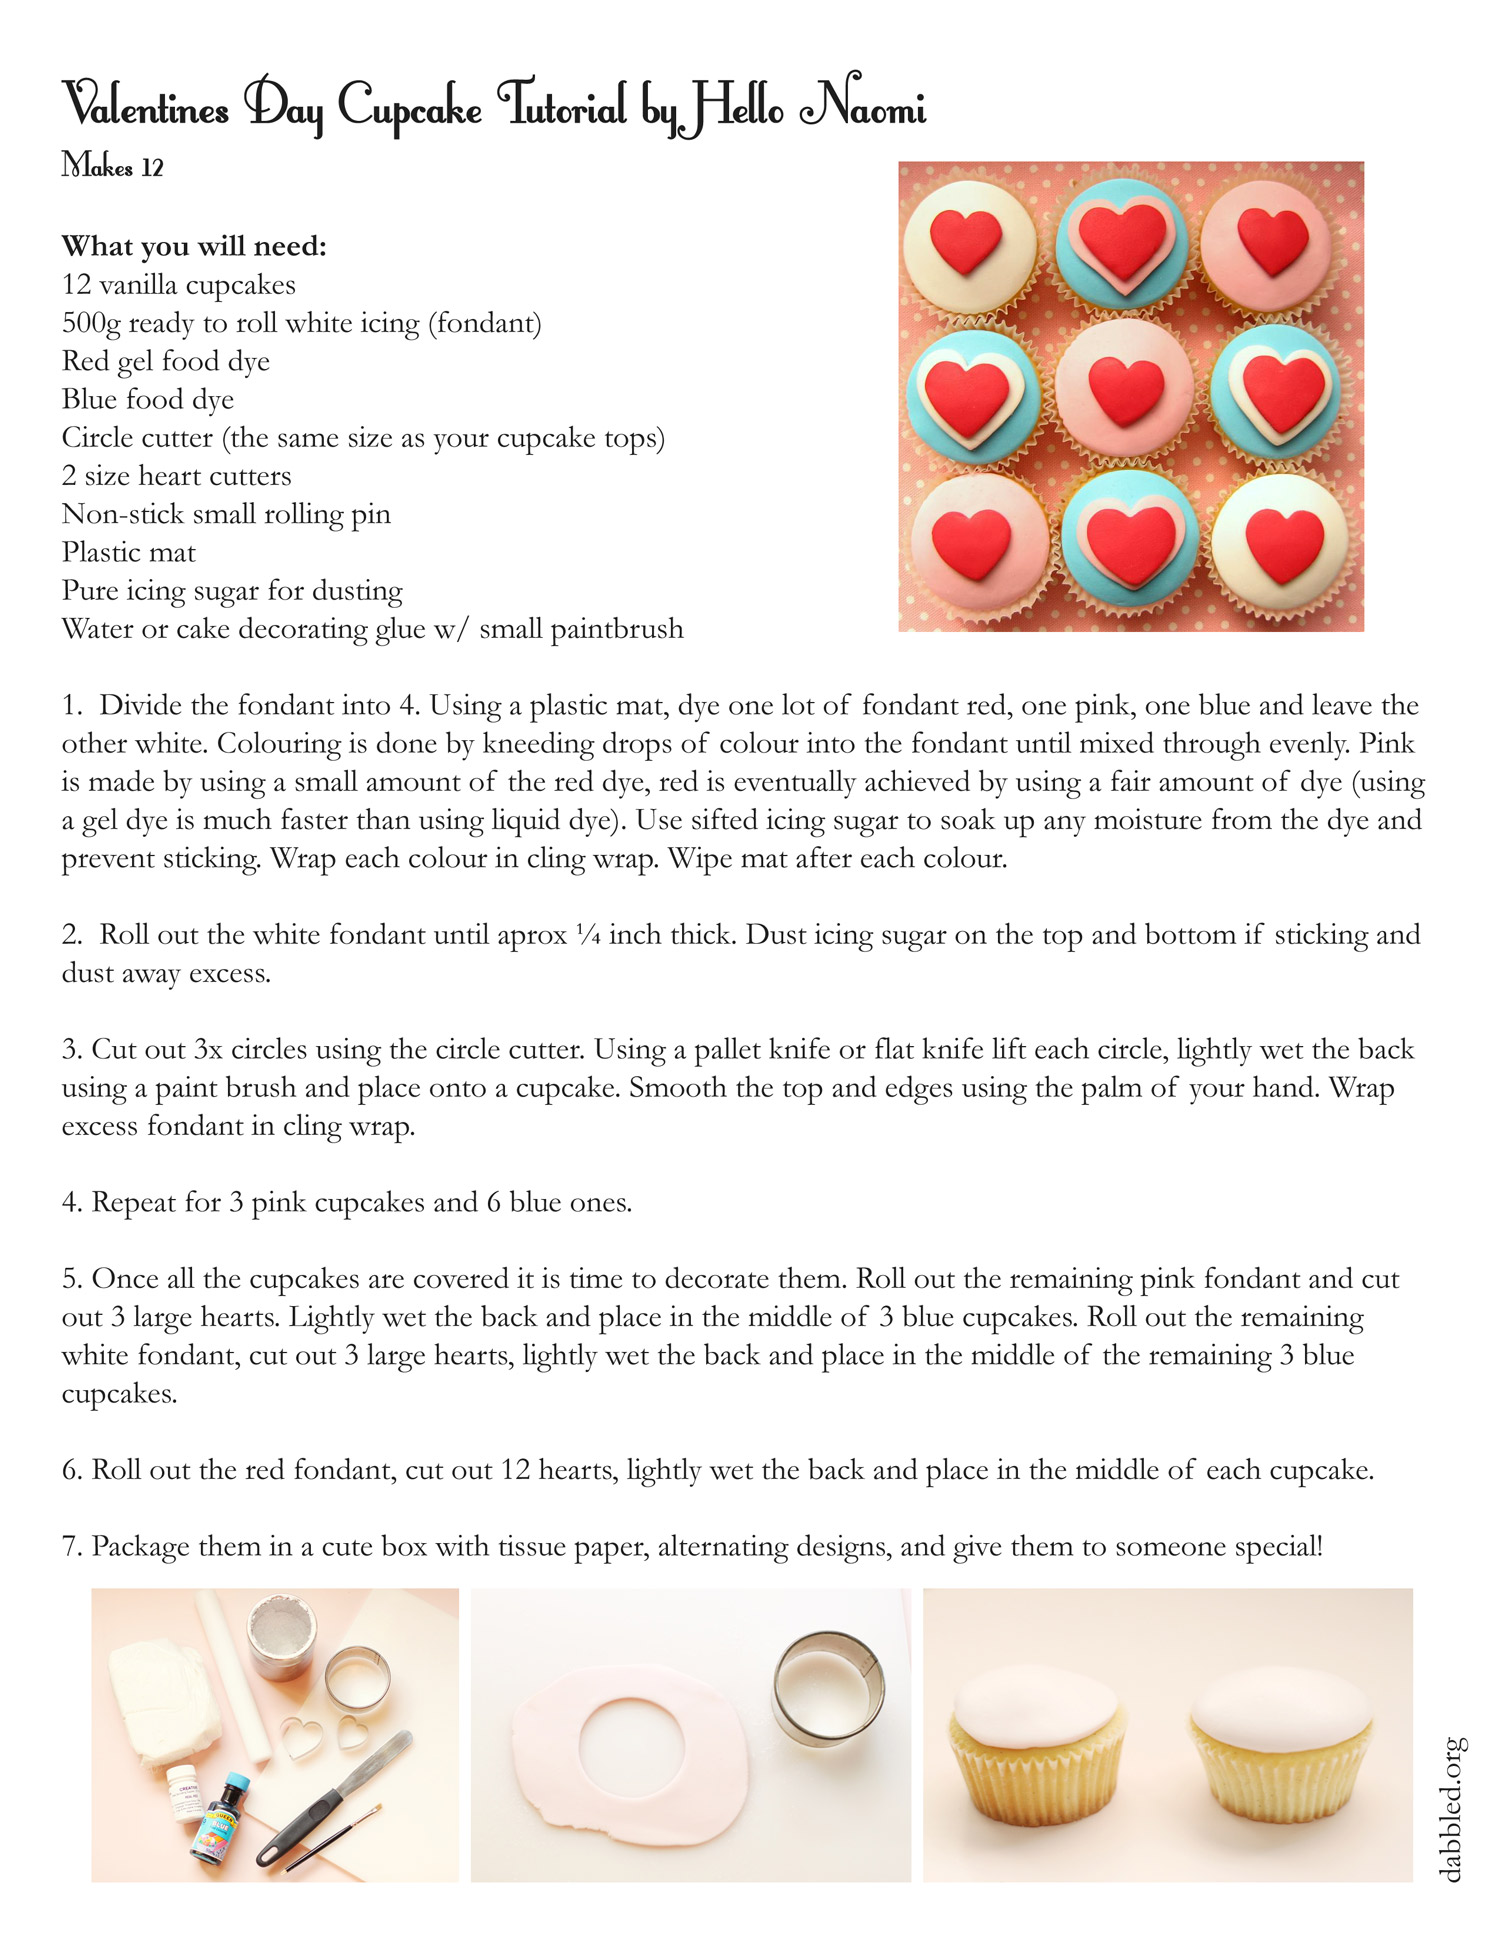 instructions how to make cupcakes